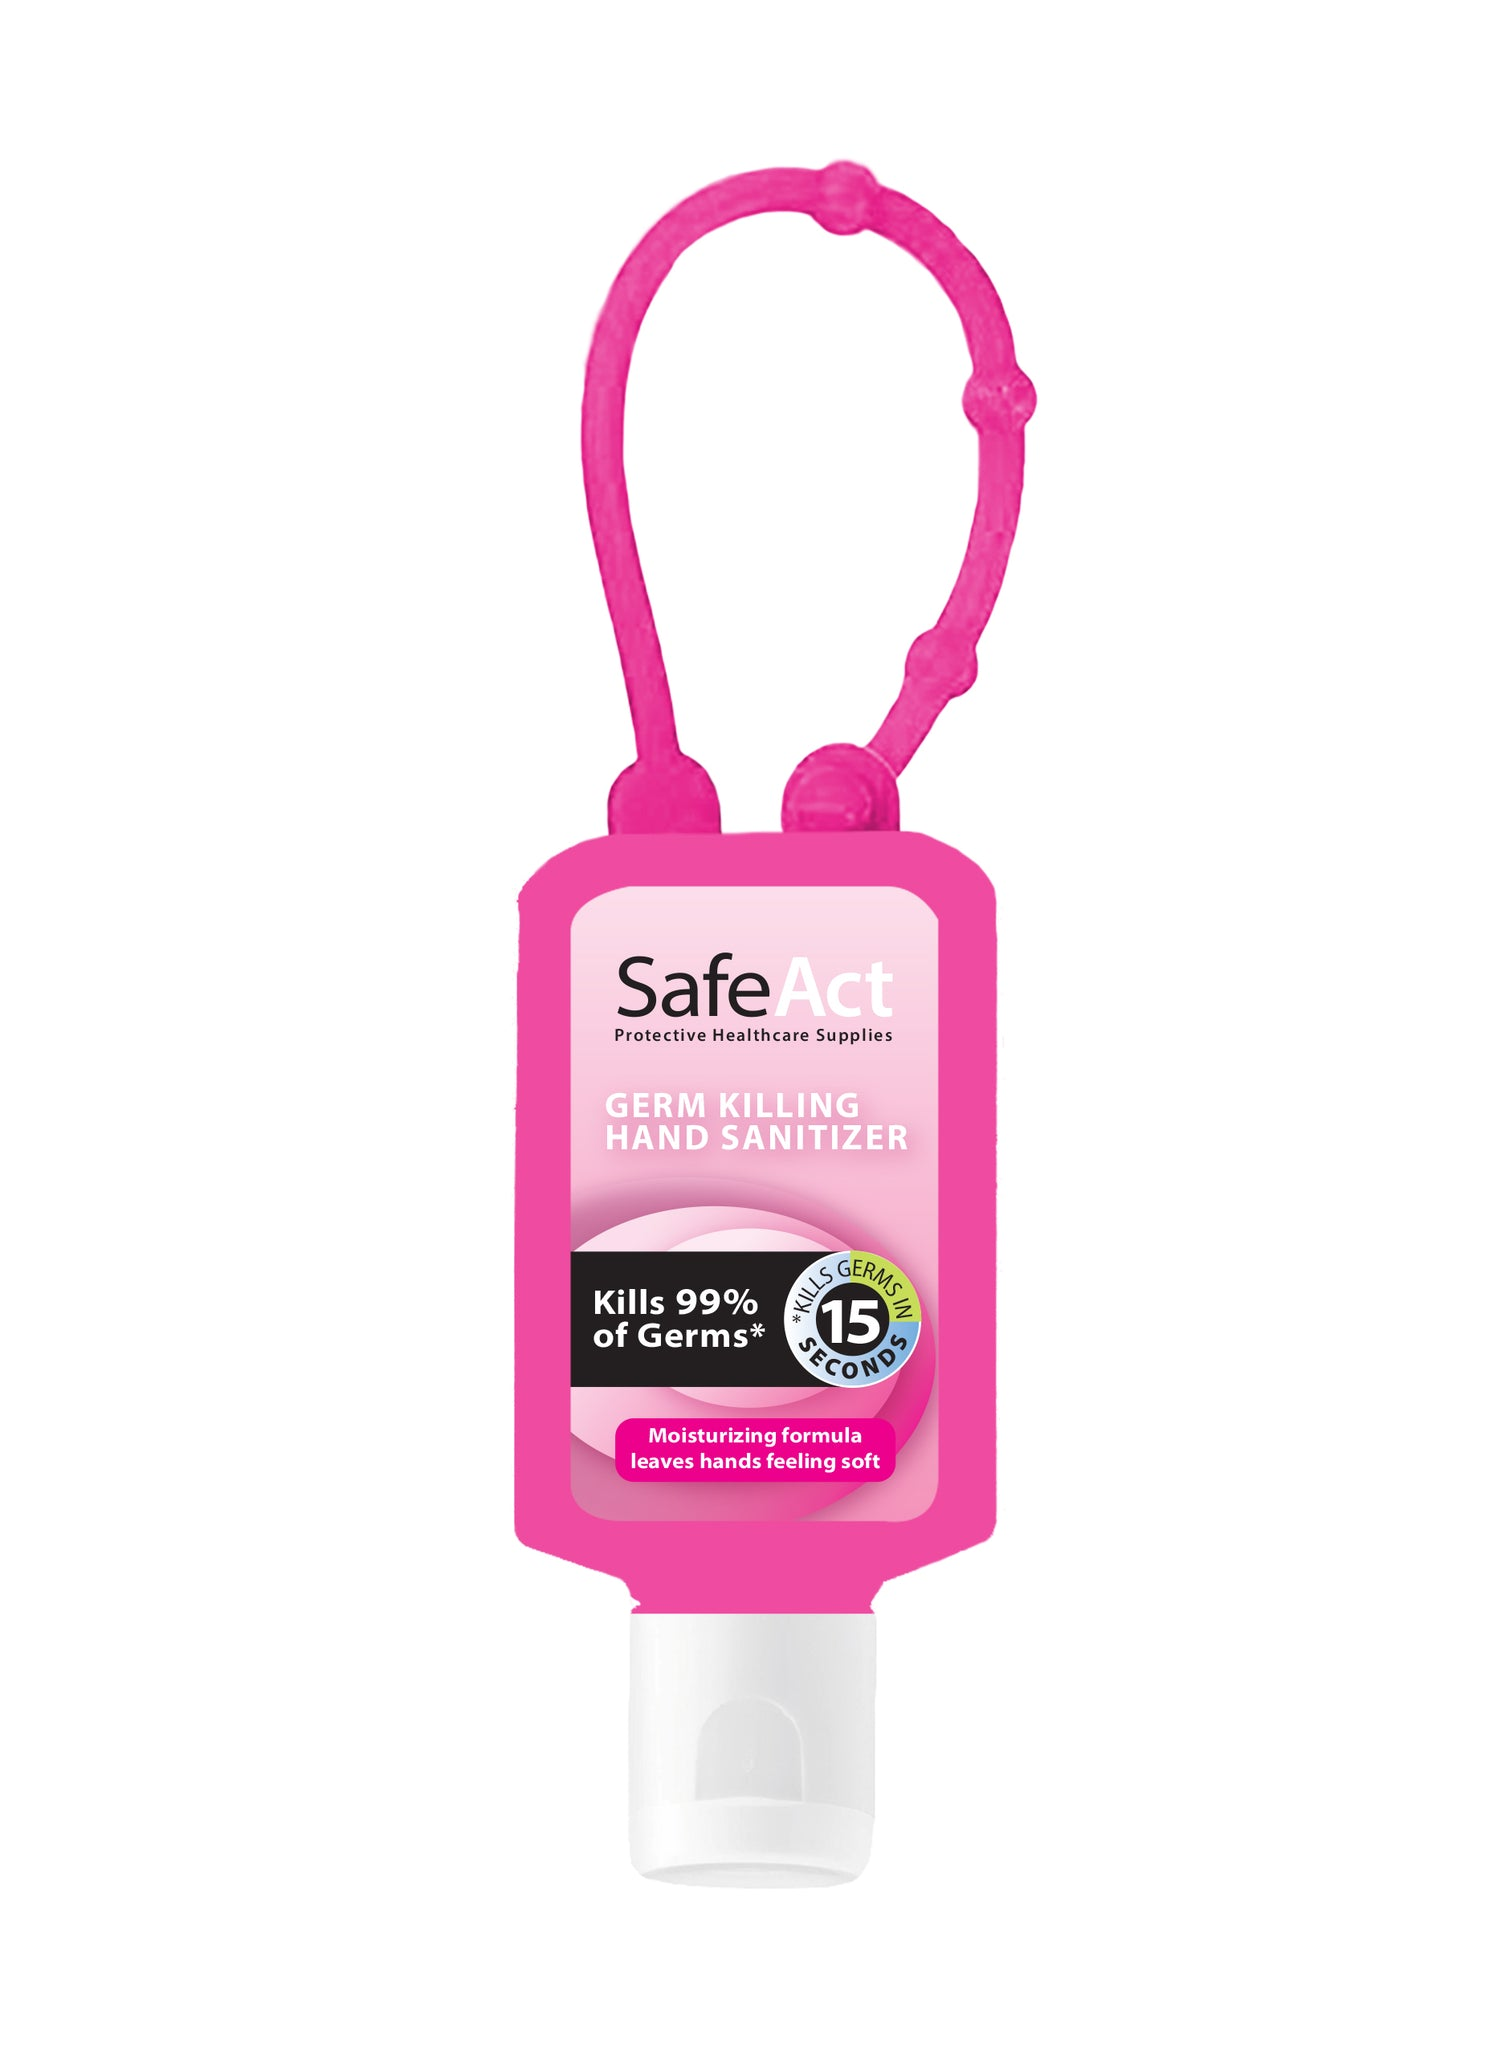 SafeAct Kit For Girls 10 Pack